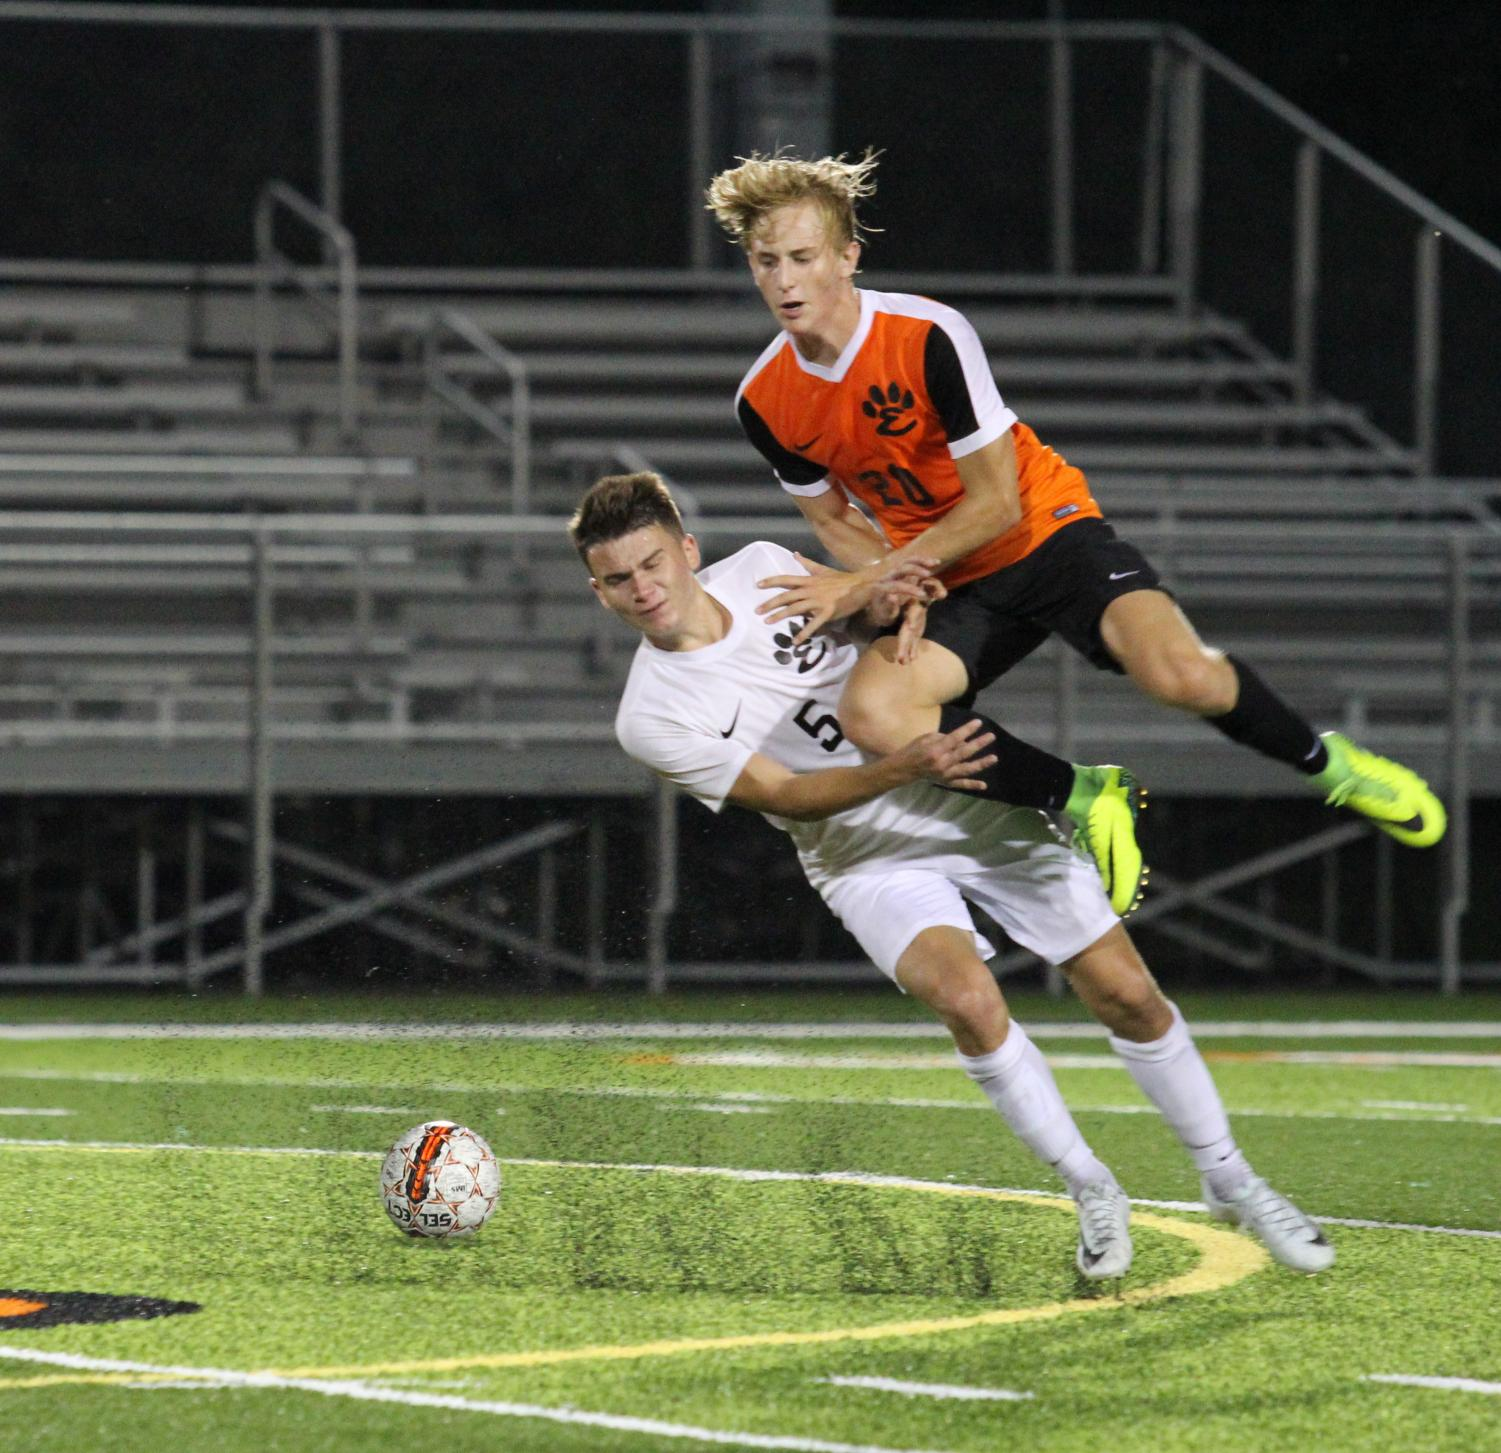 Junior Ashton Kaufman and Senior Bryce Broshow collide during the annual Orange and Black Scrimmage on Aug. 17.